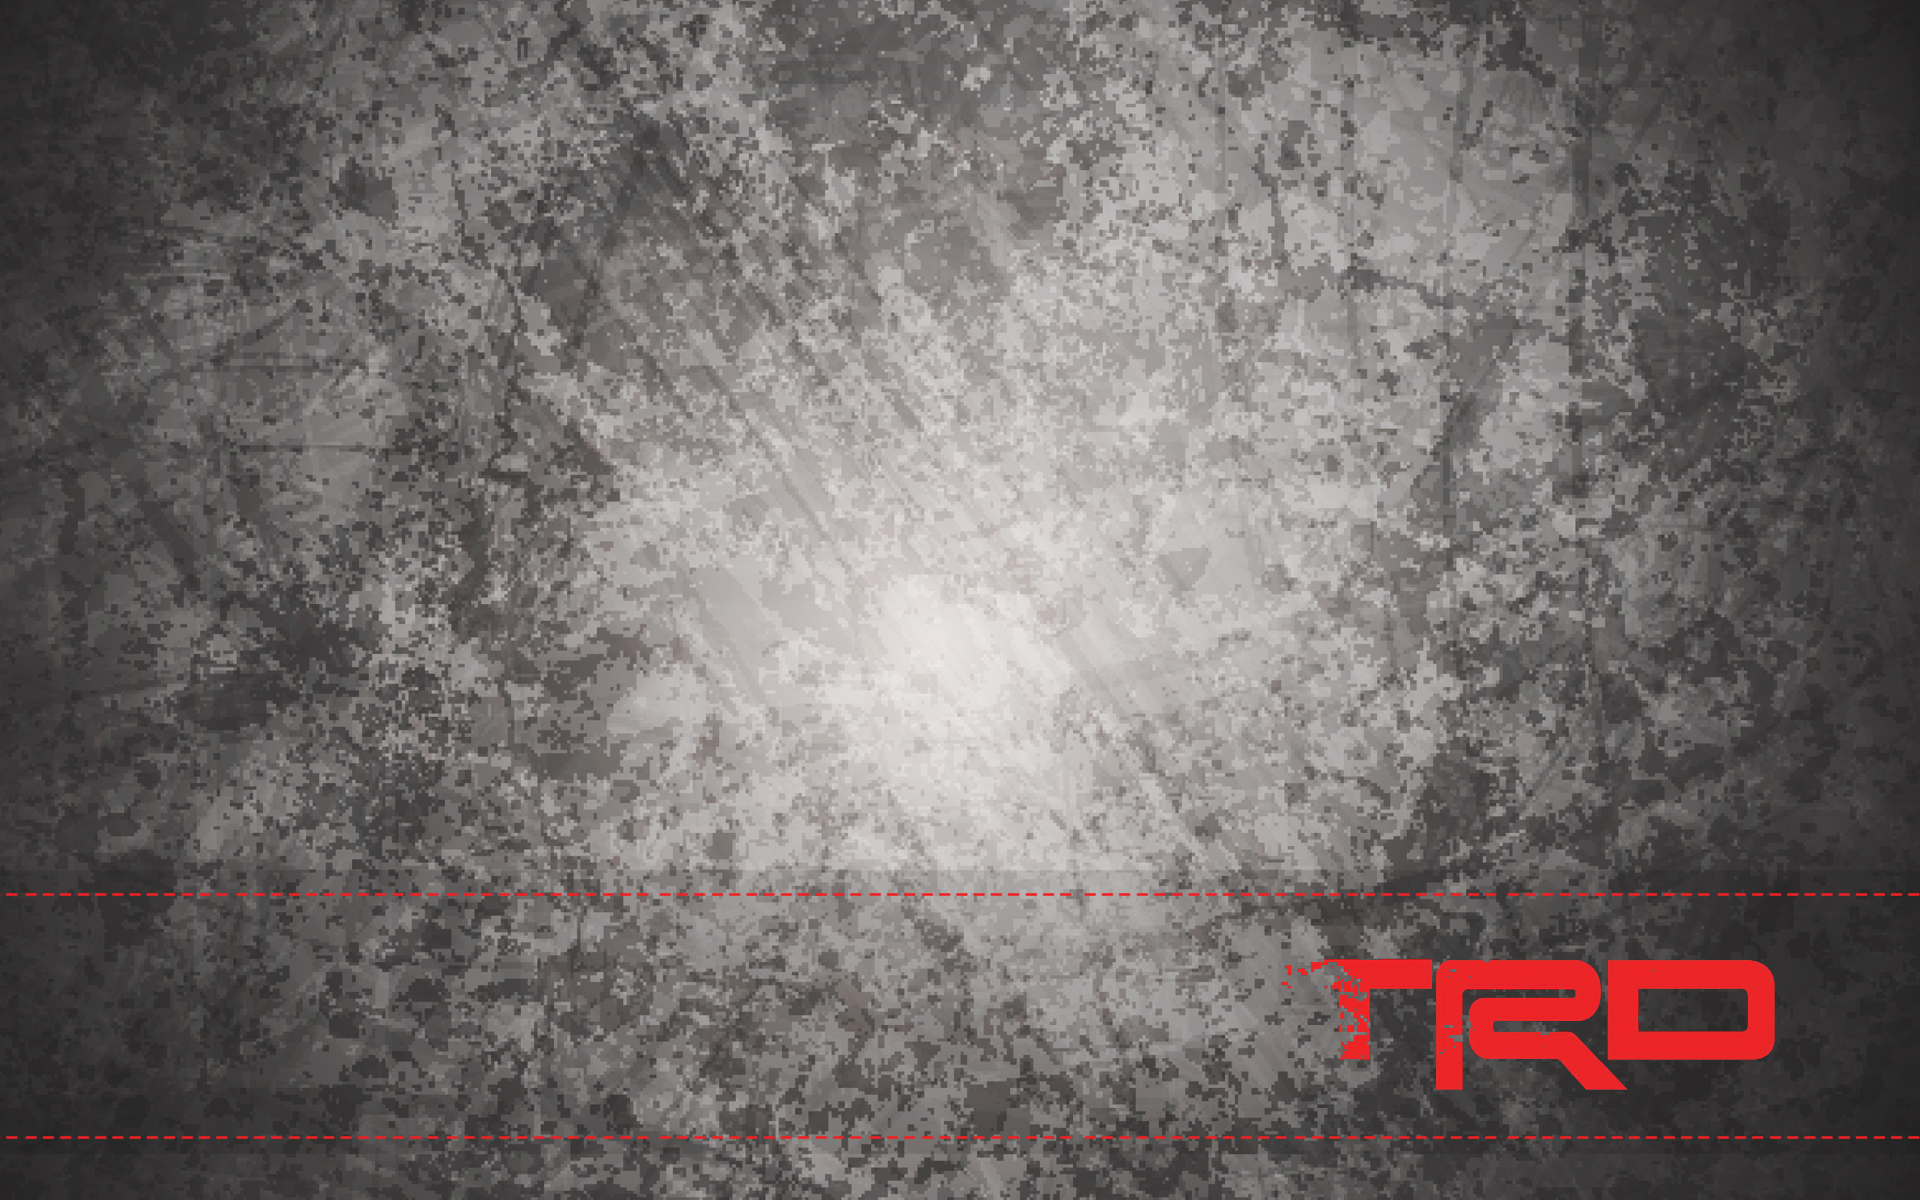 Trd Pro Wallpaper Background on Is Gas A Car Exhaust